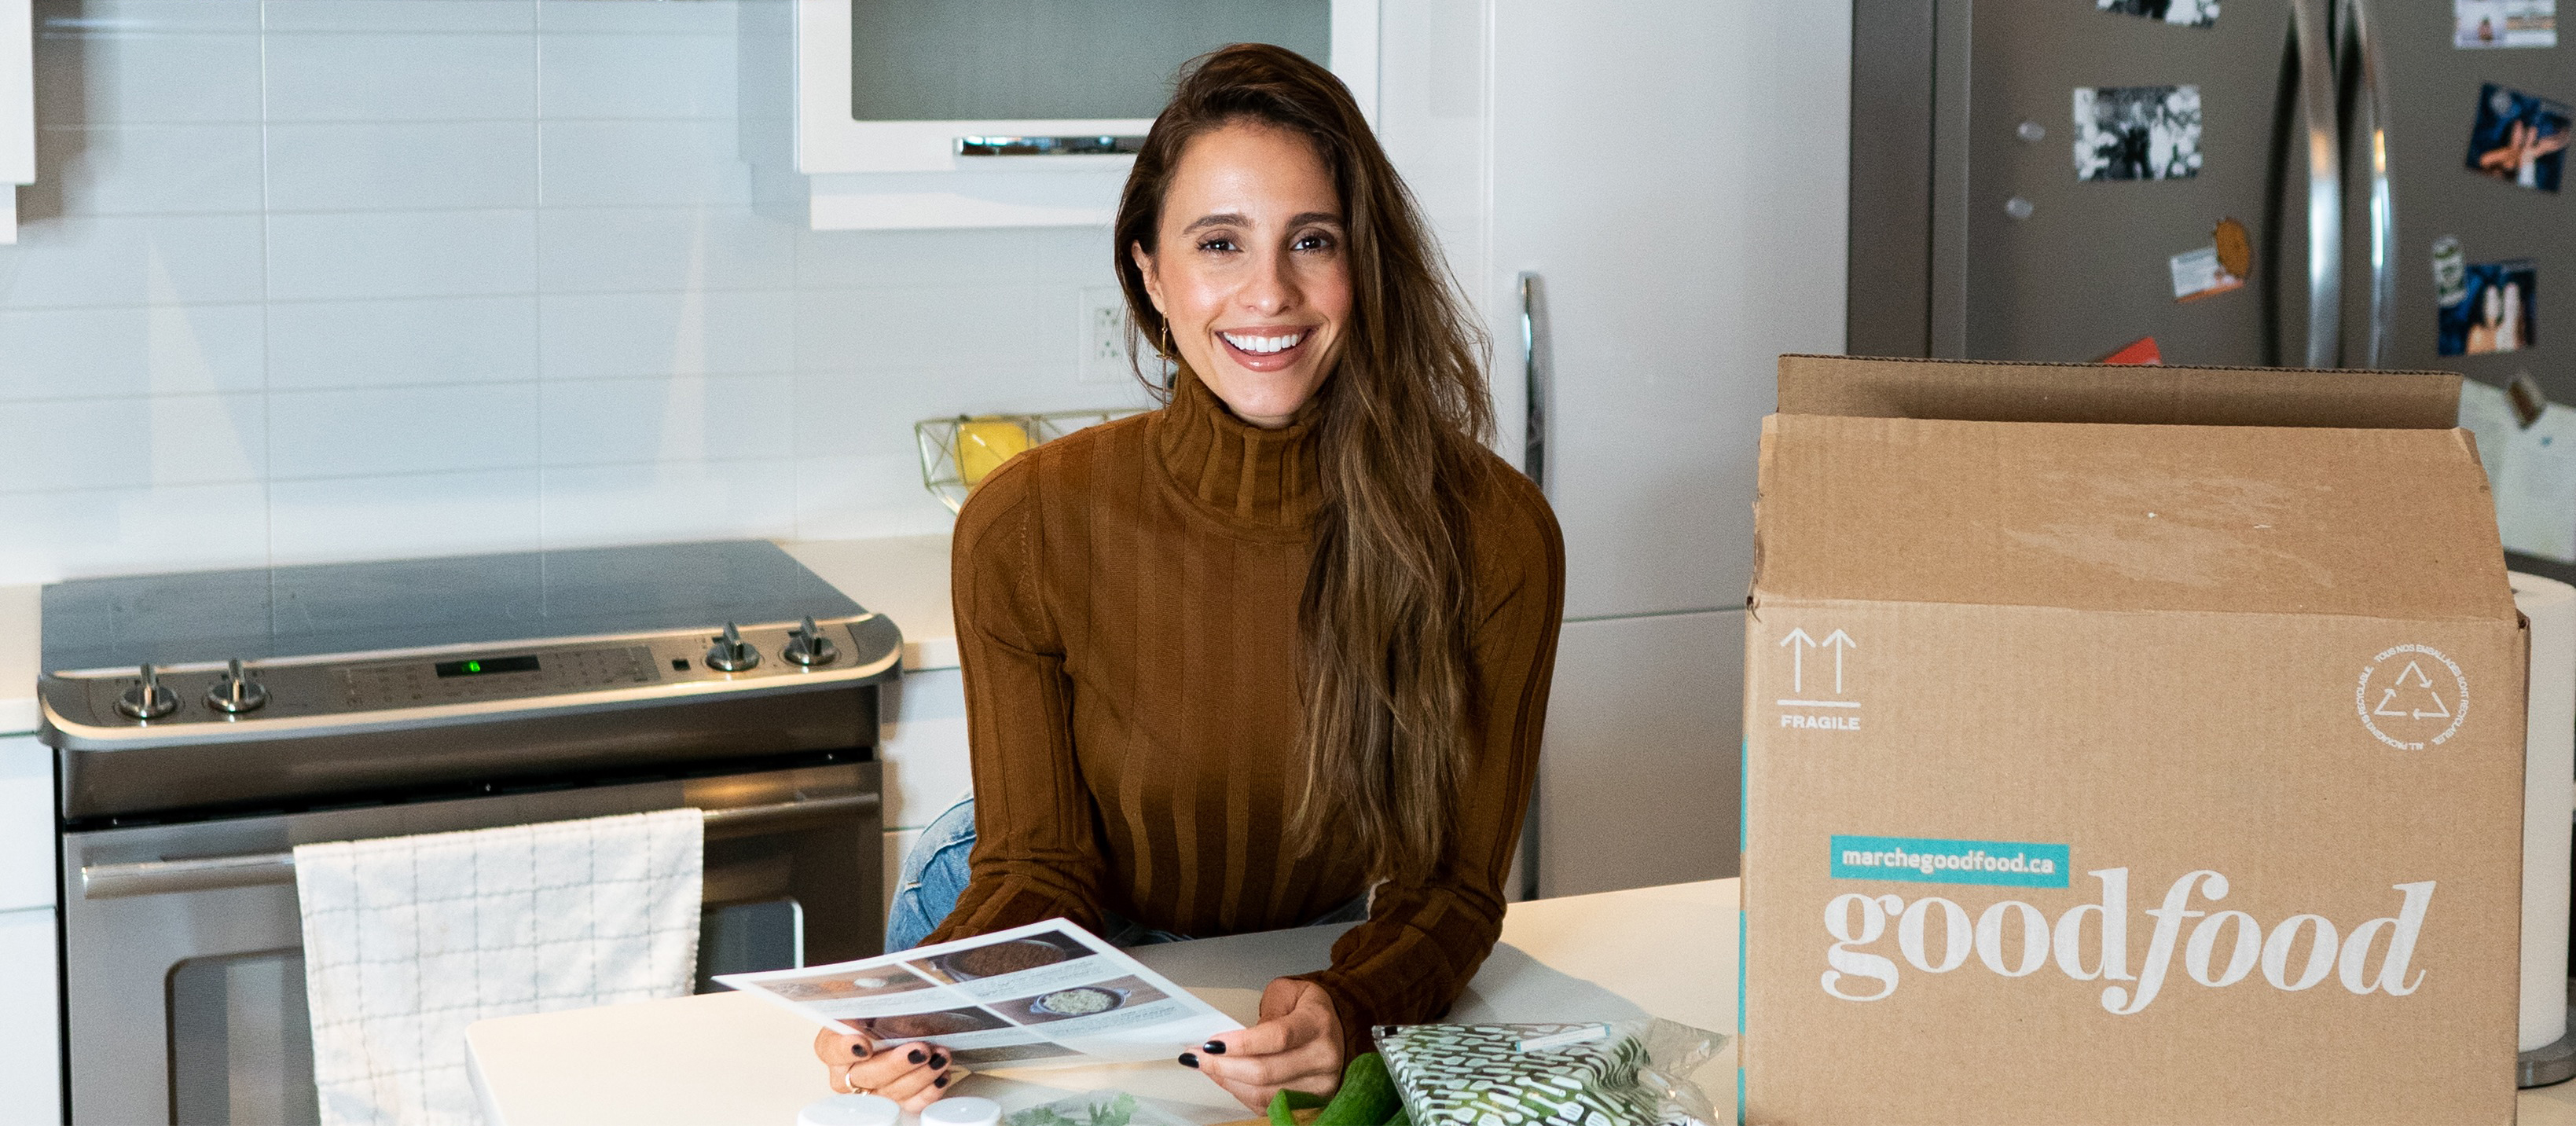 IN THE KITCHEN with Vanessa Grimaldi